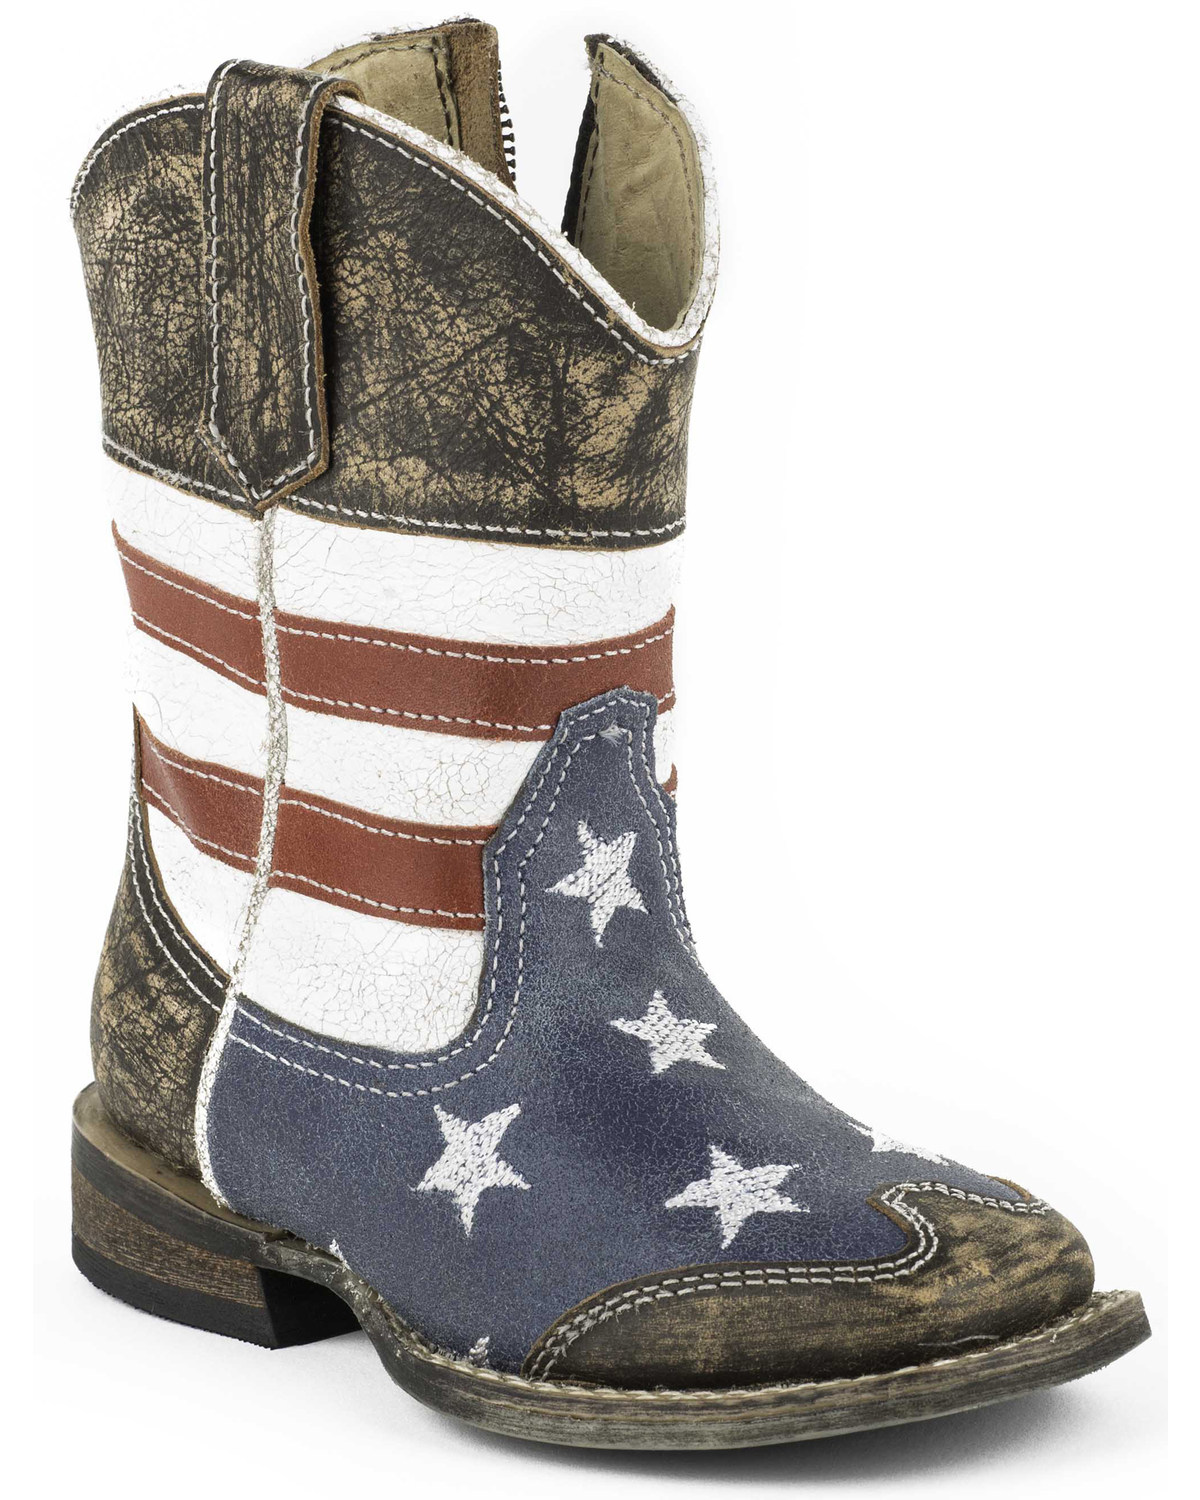 bf65fc18a Zoomed Image Roper Toddler Boys' American Flag Inside Zip Cowboy Boots -  Square Toe, Dark Brown